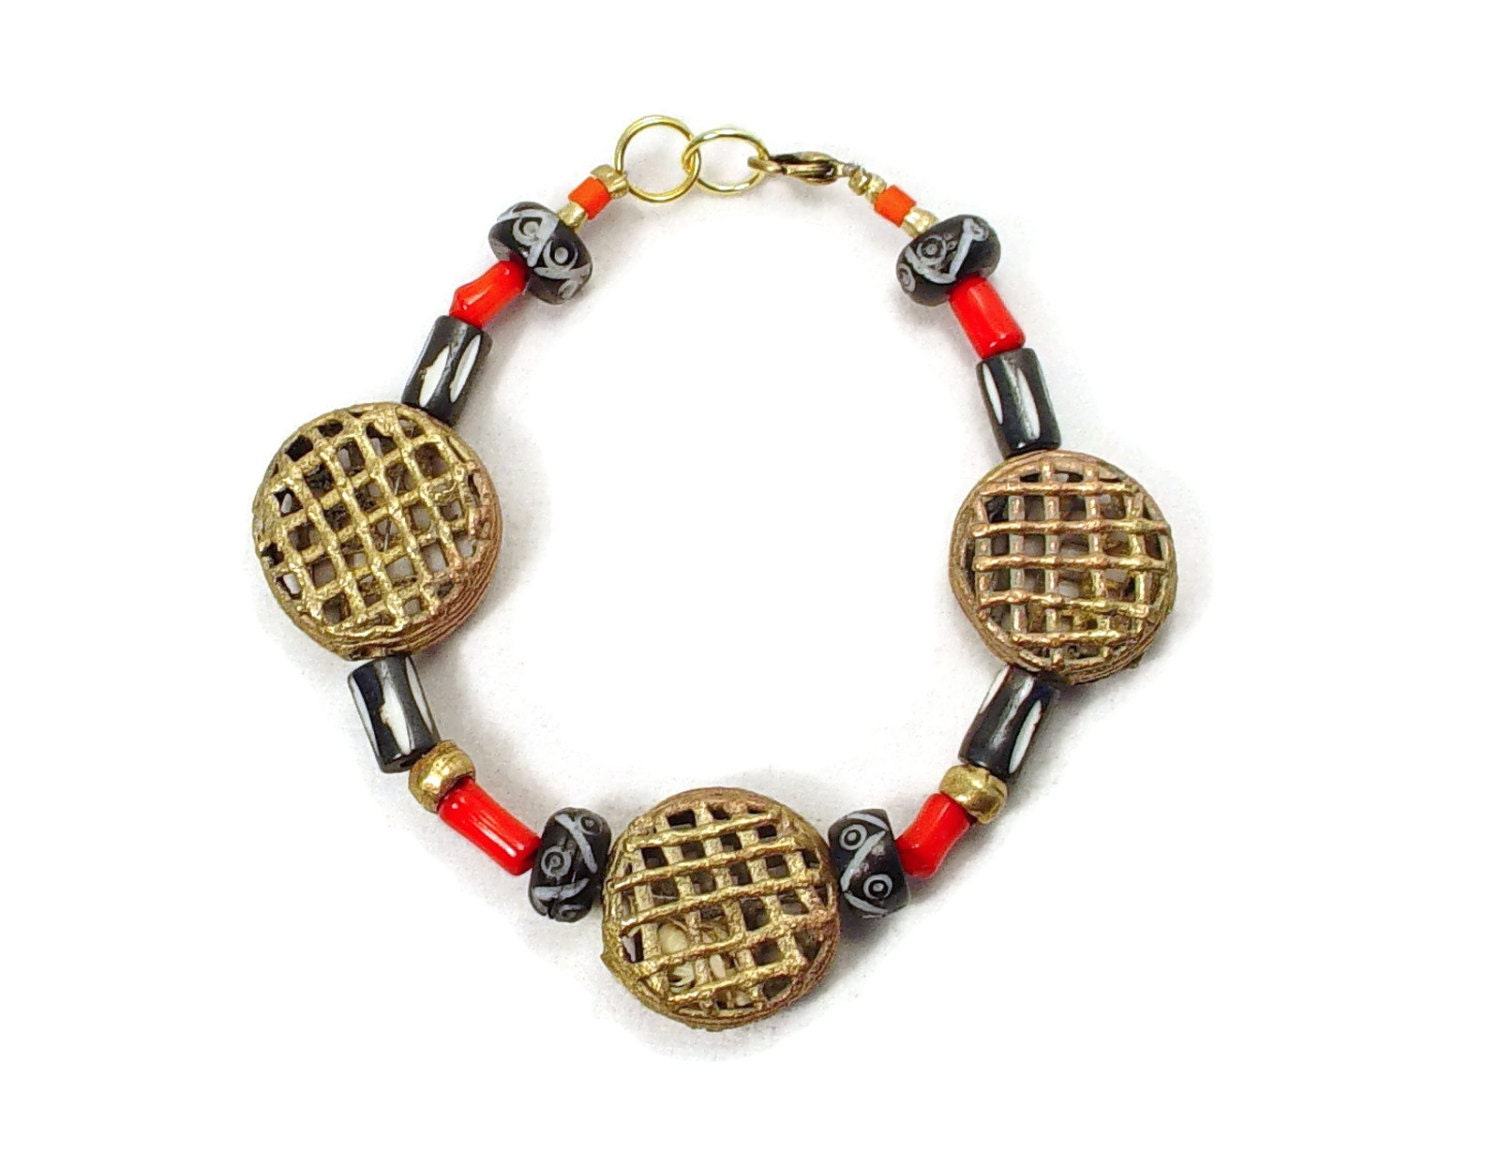 Bracelet African Trade Beads of Brass Disk Beads Coral and